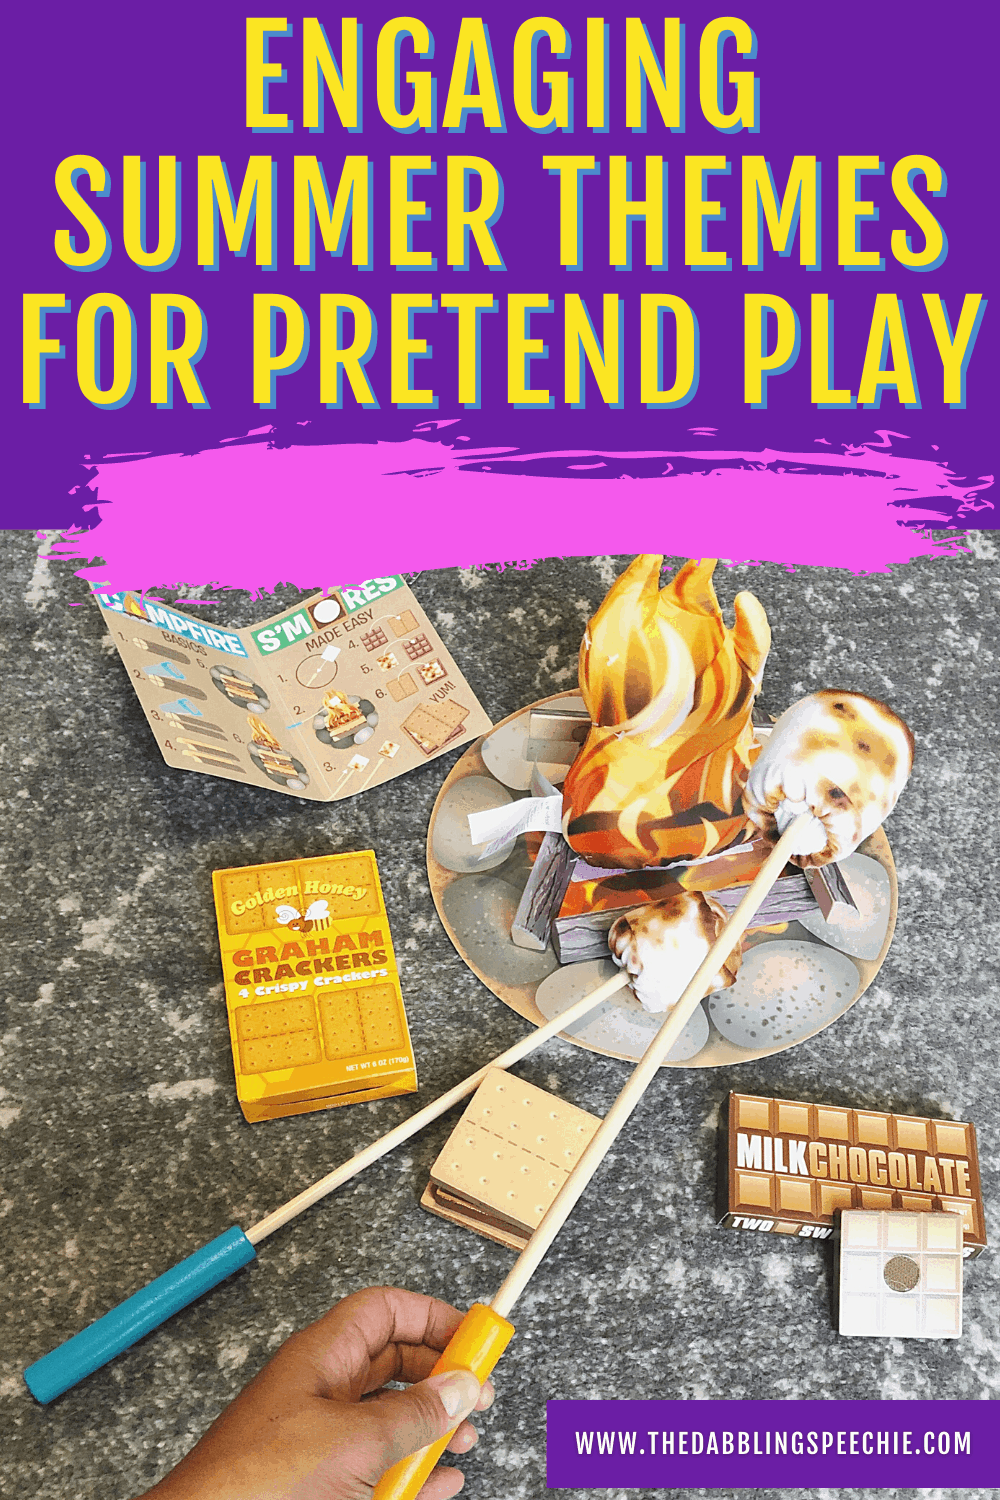 Need some play-based speech therapy ideas with a summer theme? Check out these fun summer play themes you can do during ESY or with private clients.